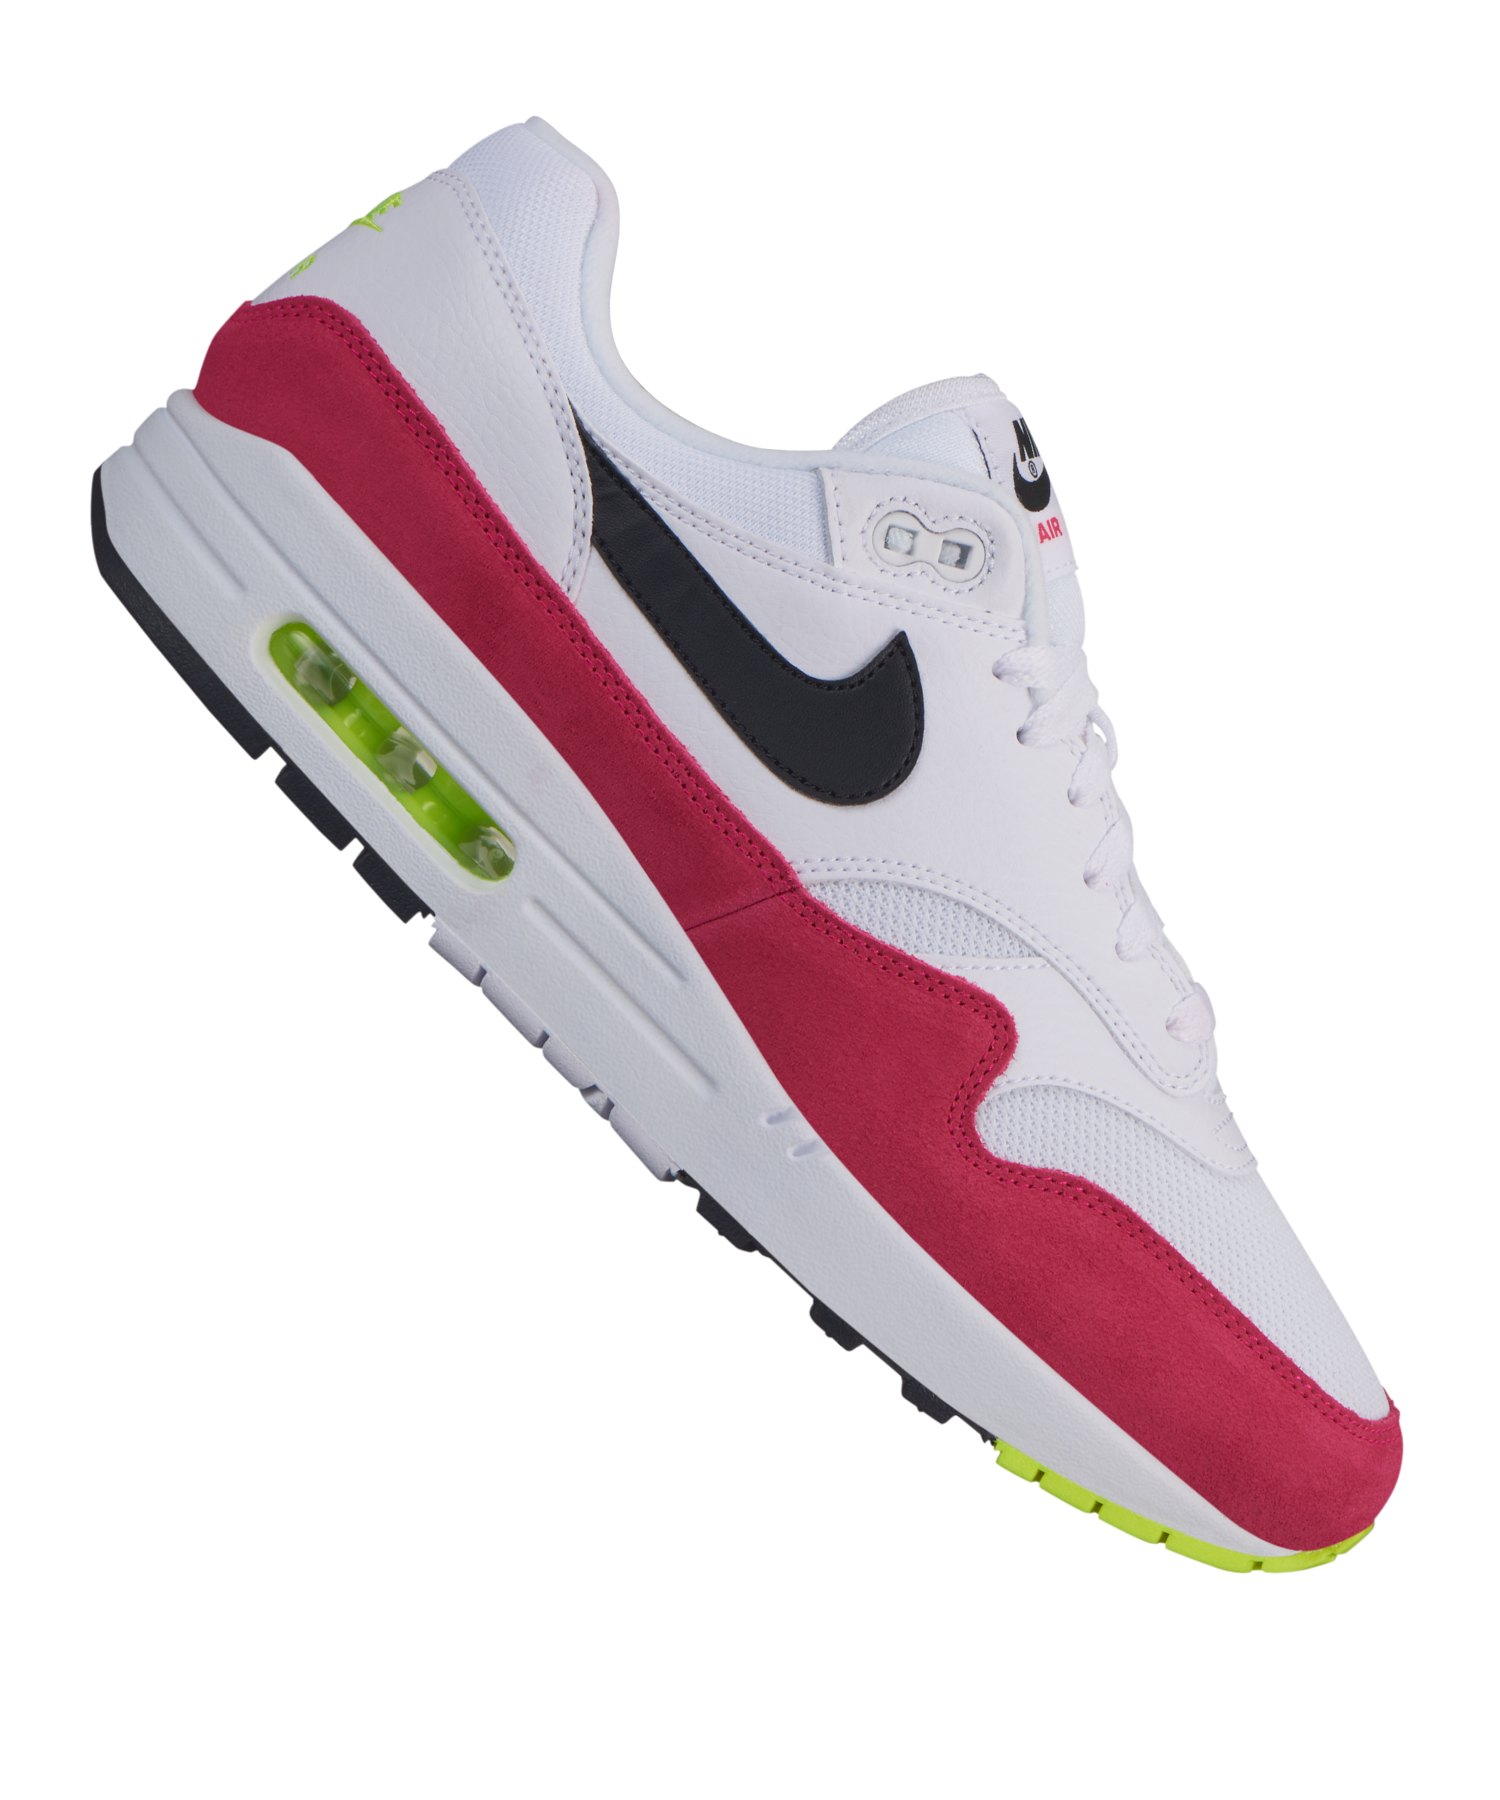 speical offer for whole family online for sale Nike